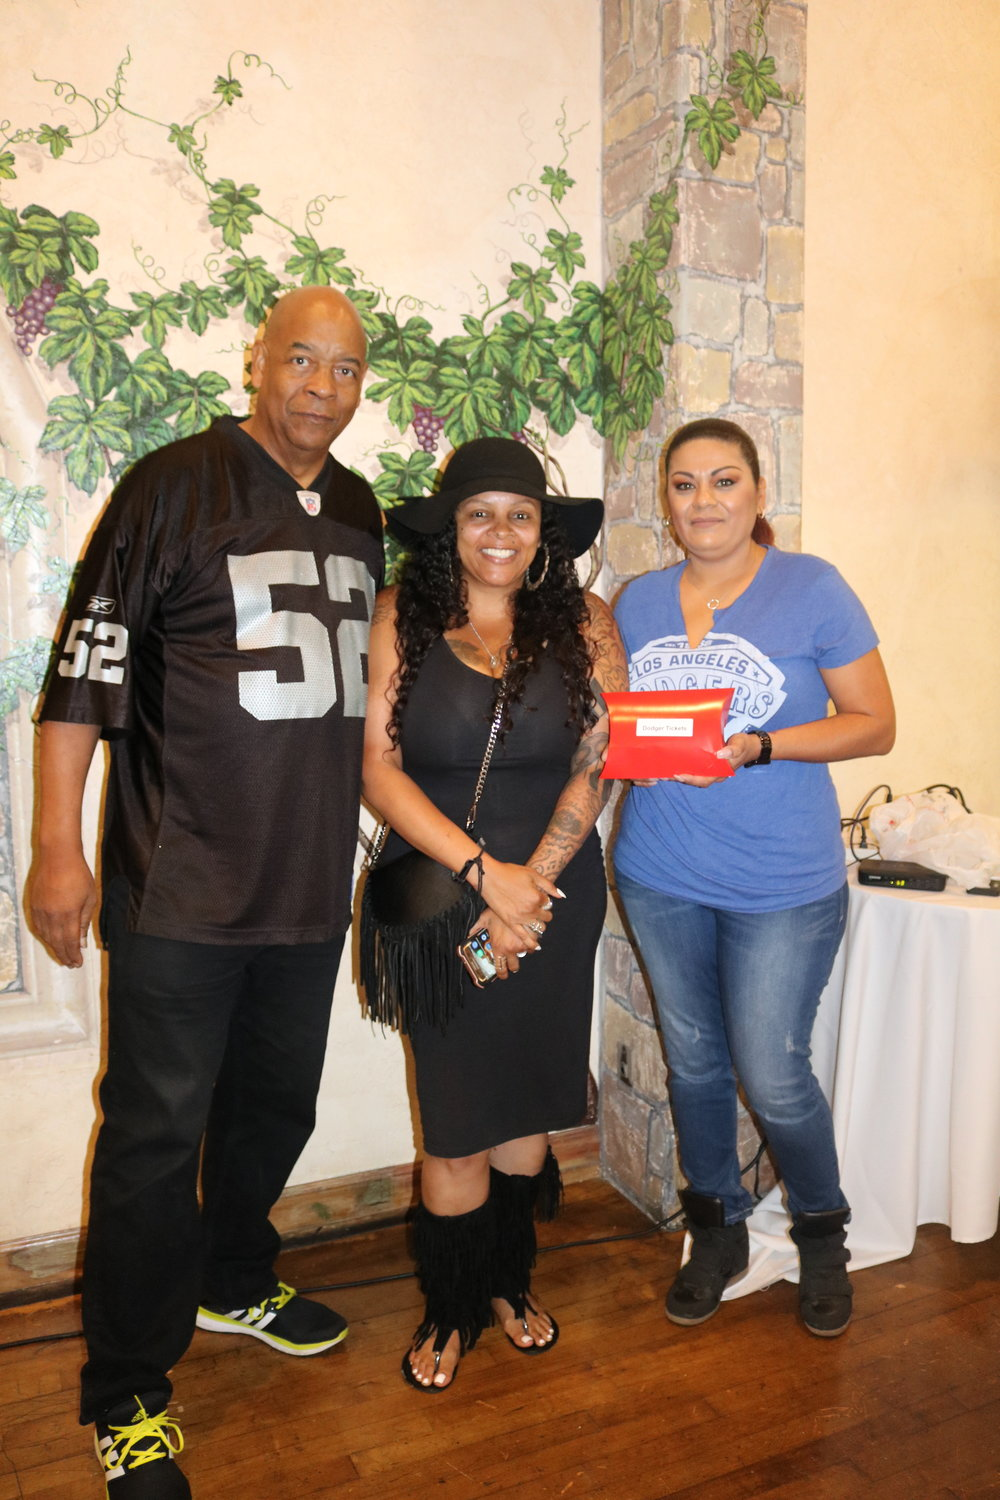 This year's event had a sports theme. Attendees received raffle tickets for sports-related prizes including tickets to a Dodger game.